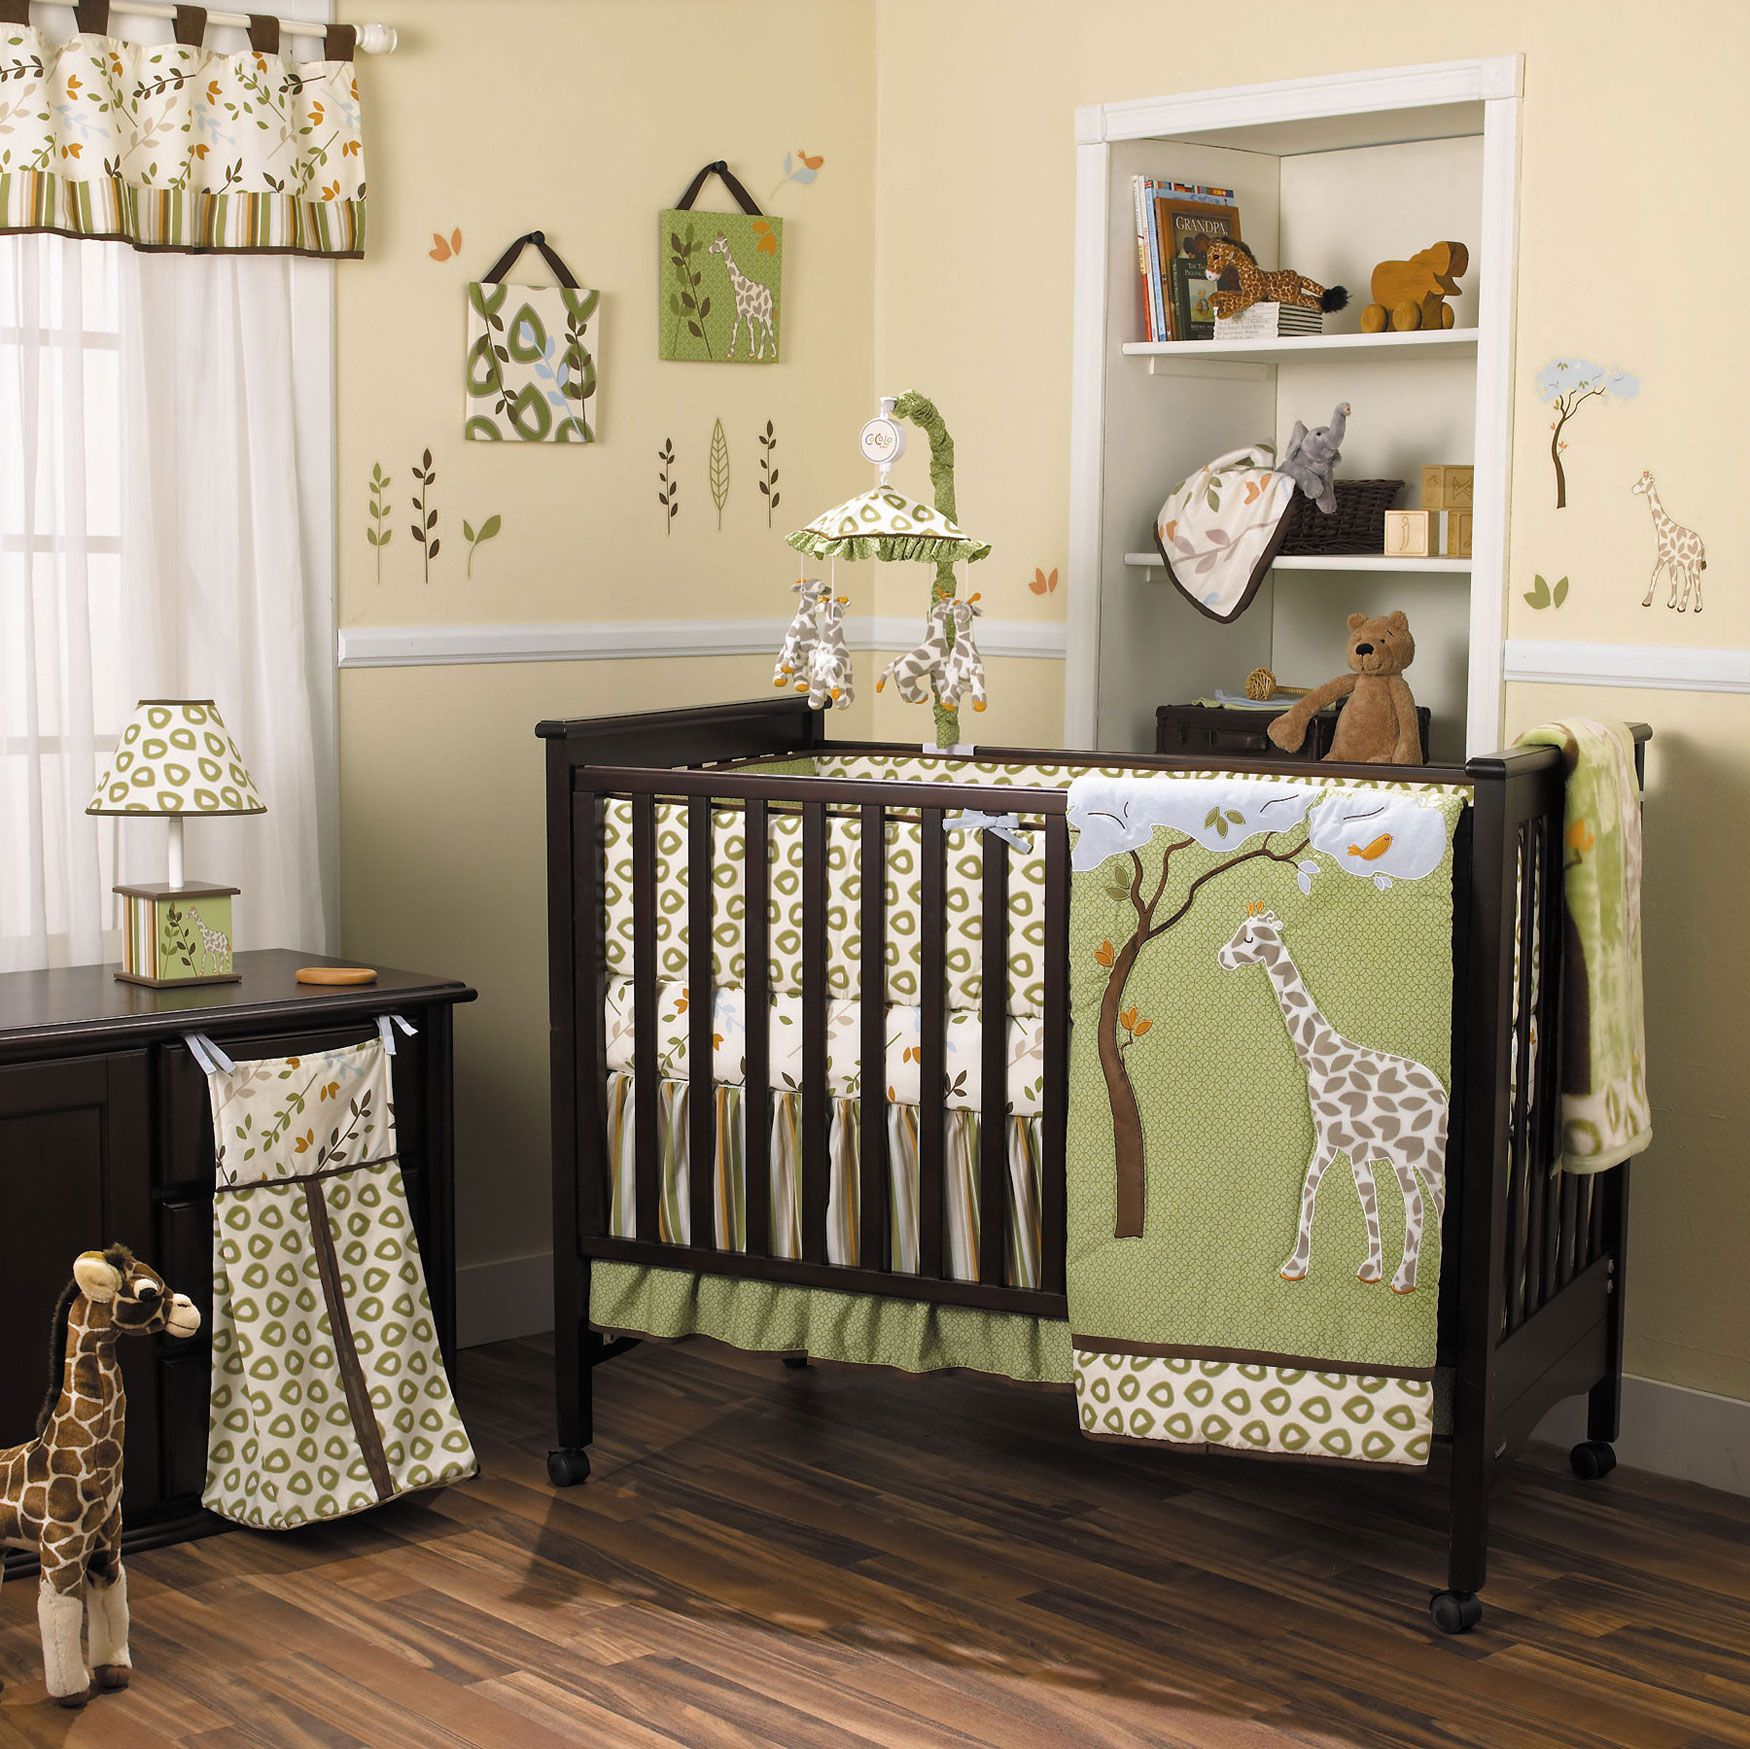 Baby cribs for boy - Boy Crib Bedding Nurserybabybedding Com Moremi Baby Crib Bedding Set By Cocalo Baby